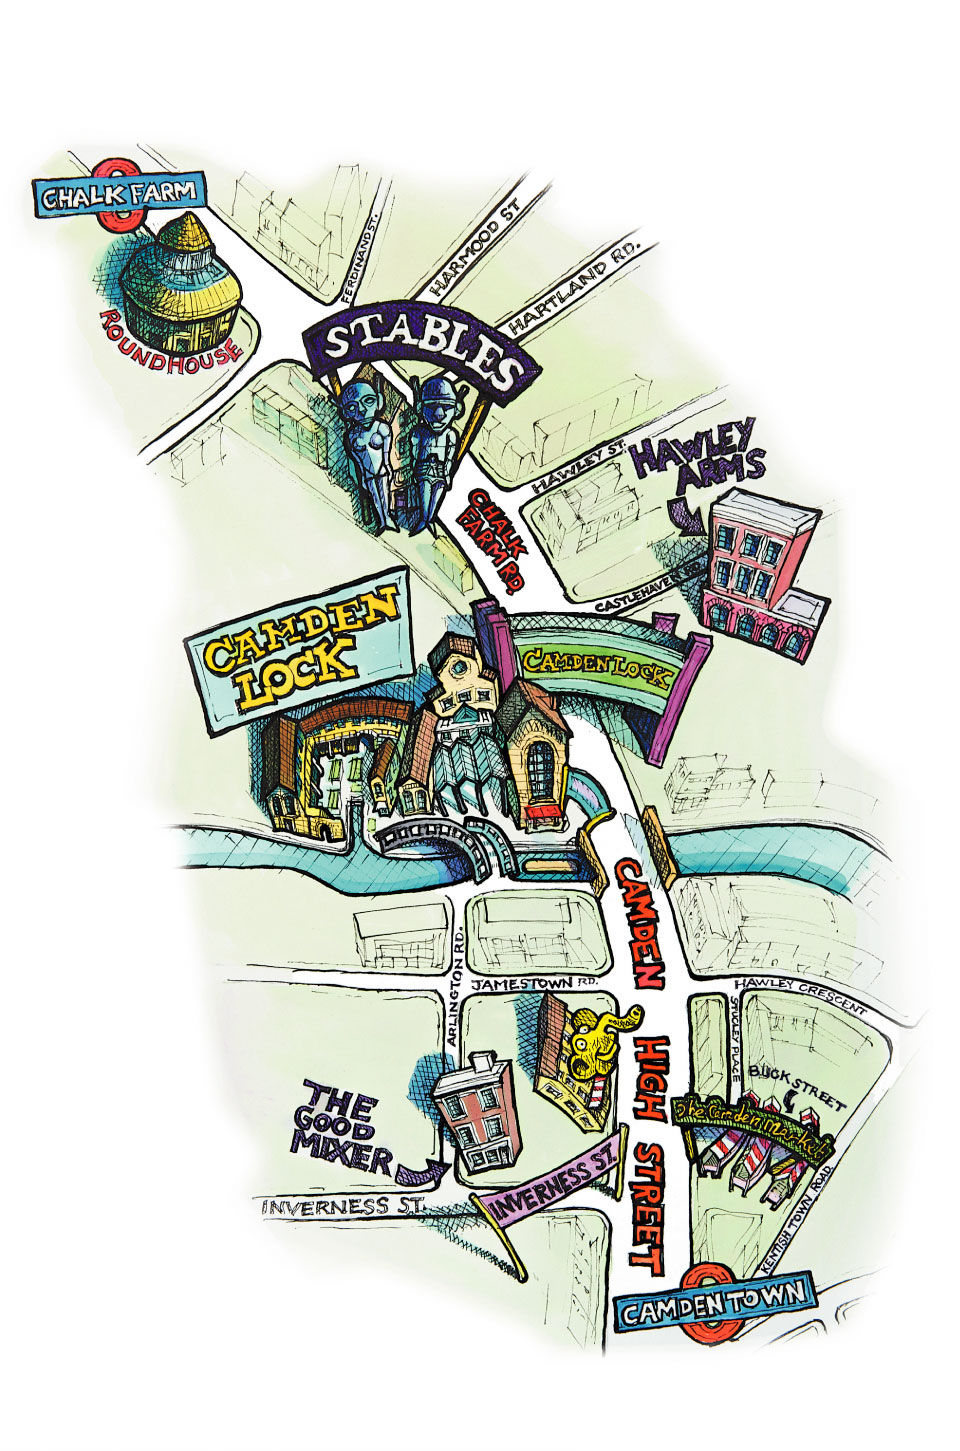 General map of the Camden Lock Market area.